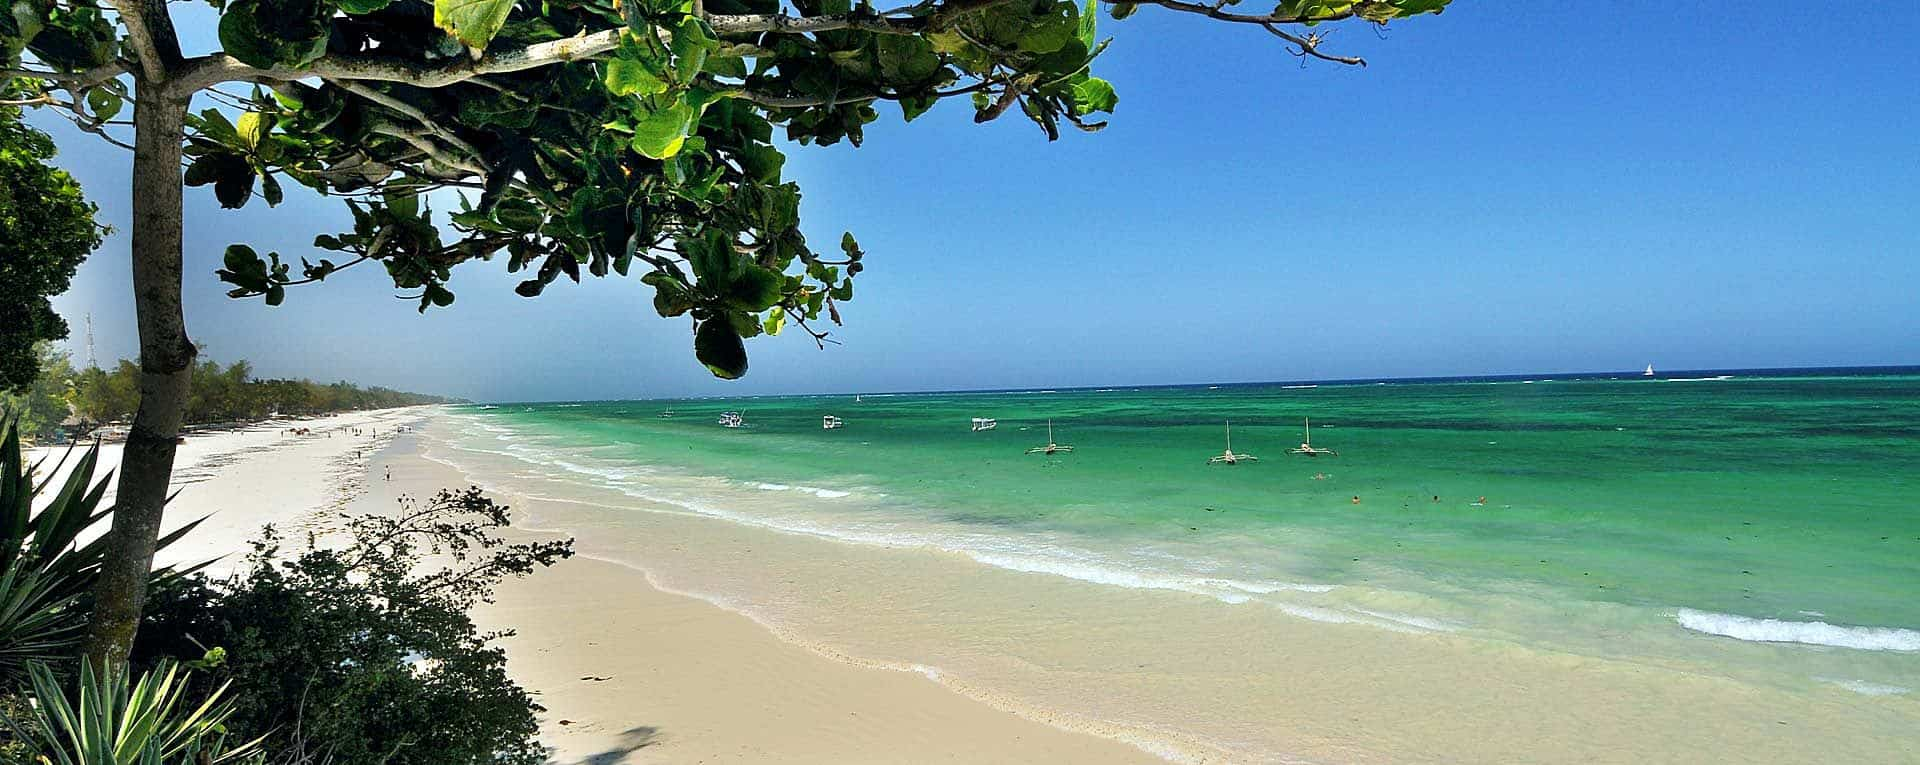 Holiday Guide For Islands & Beaches In Kenya - AfricanMecca